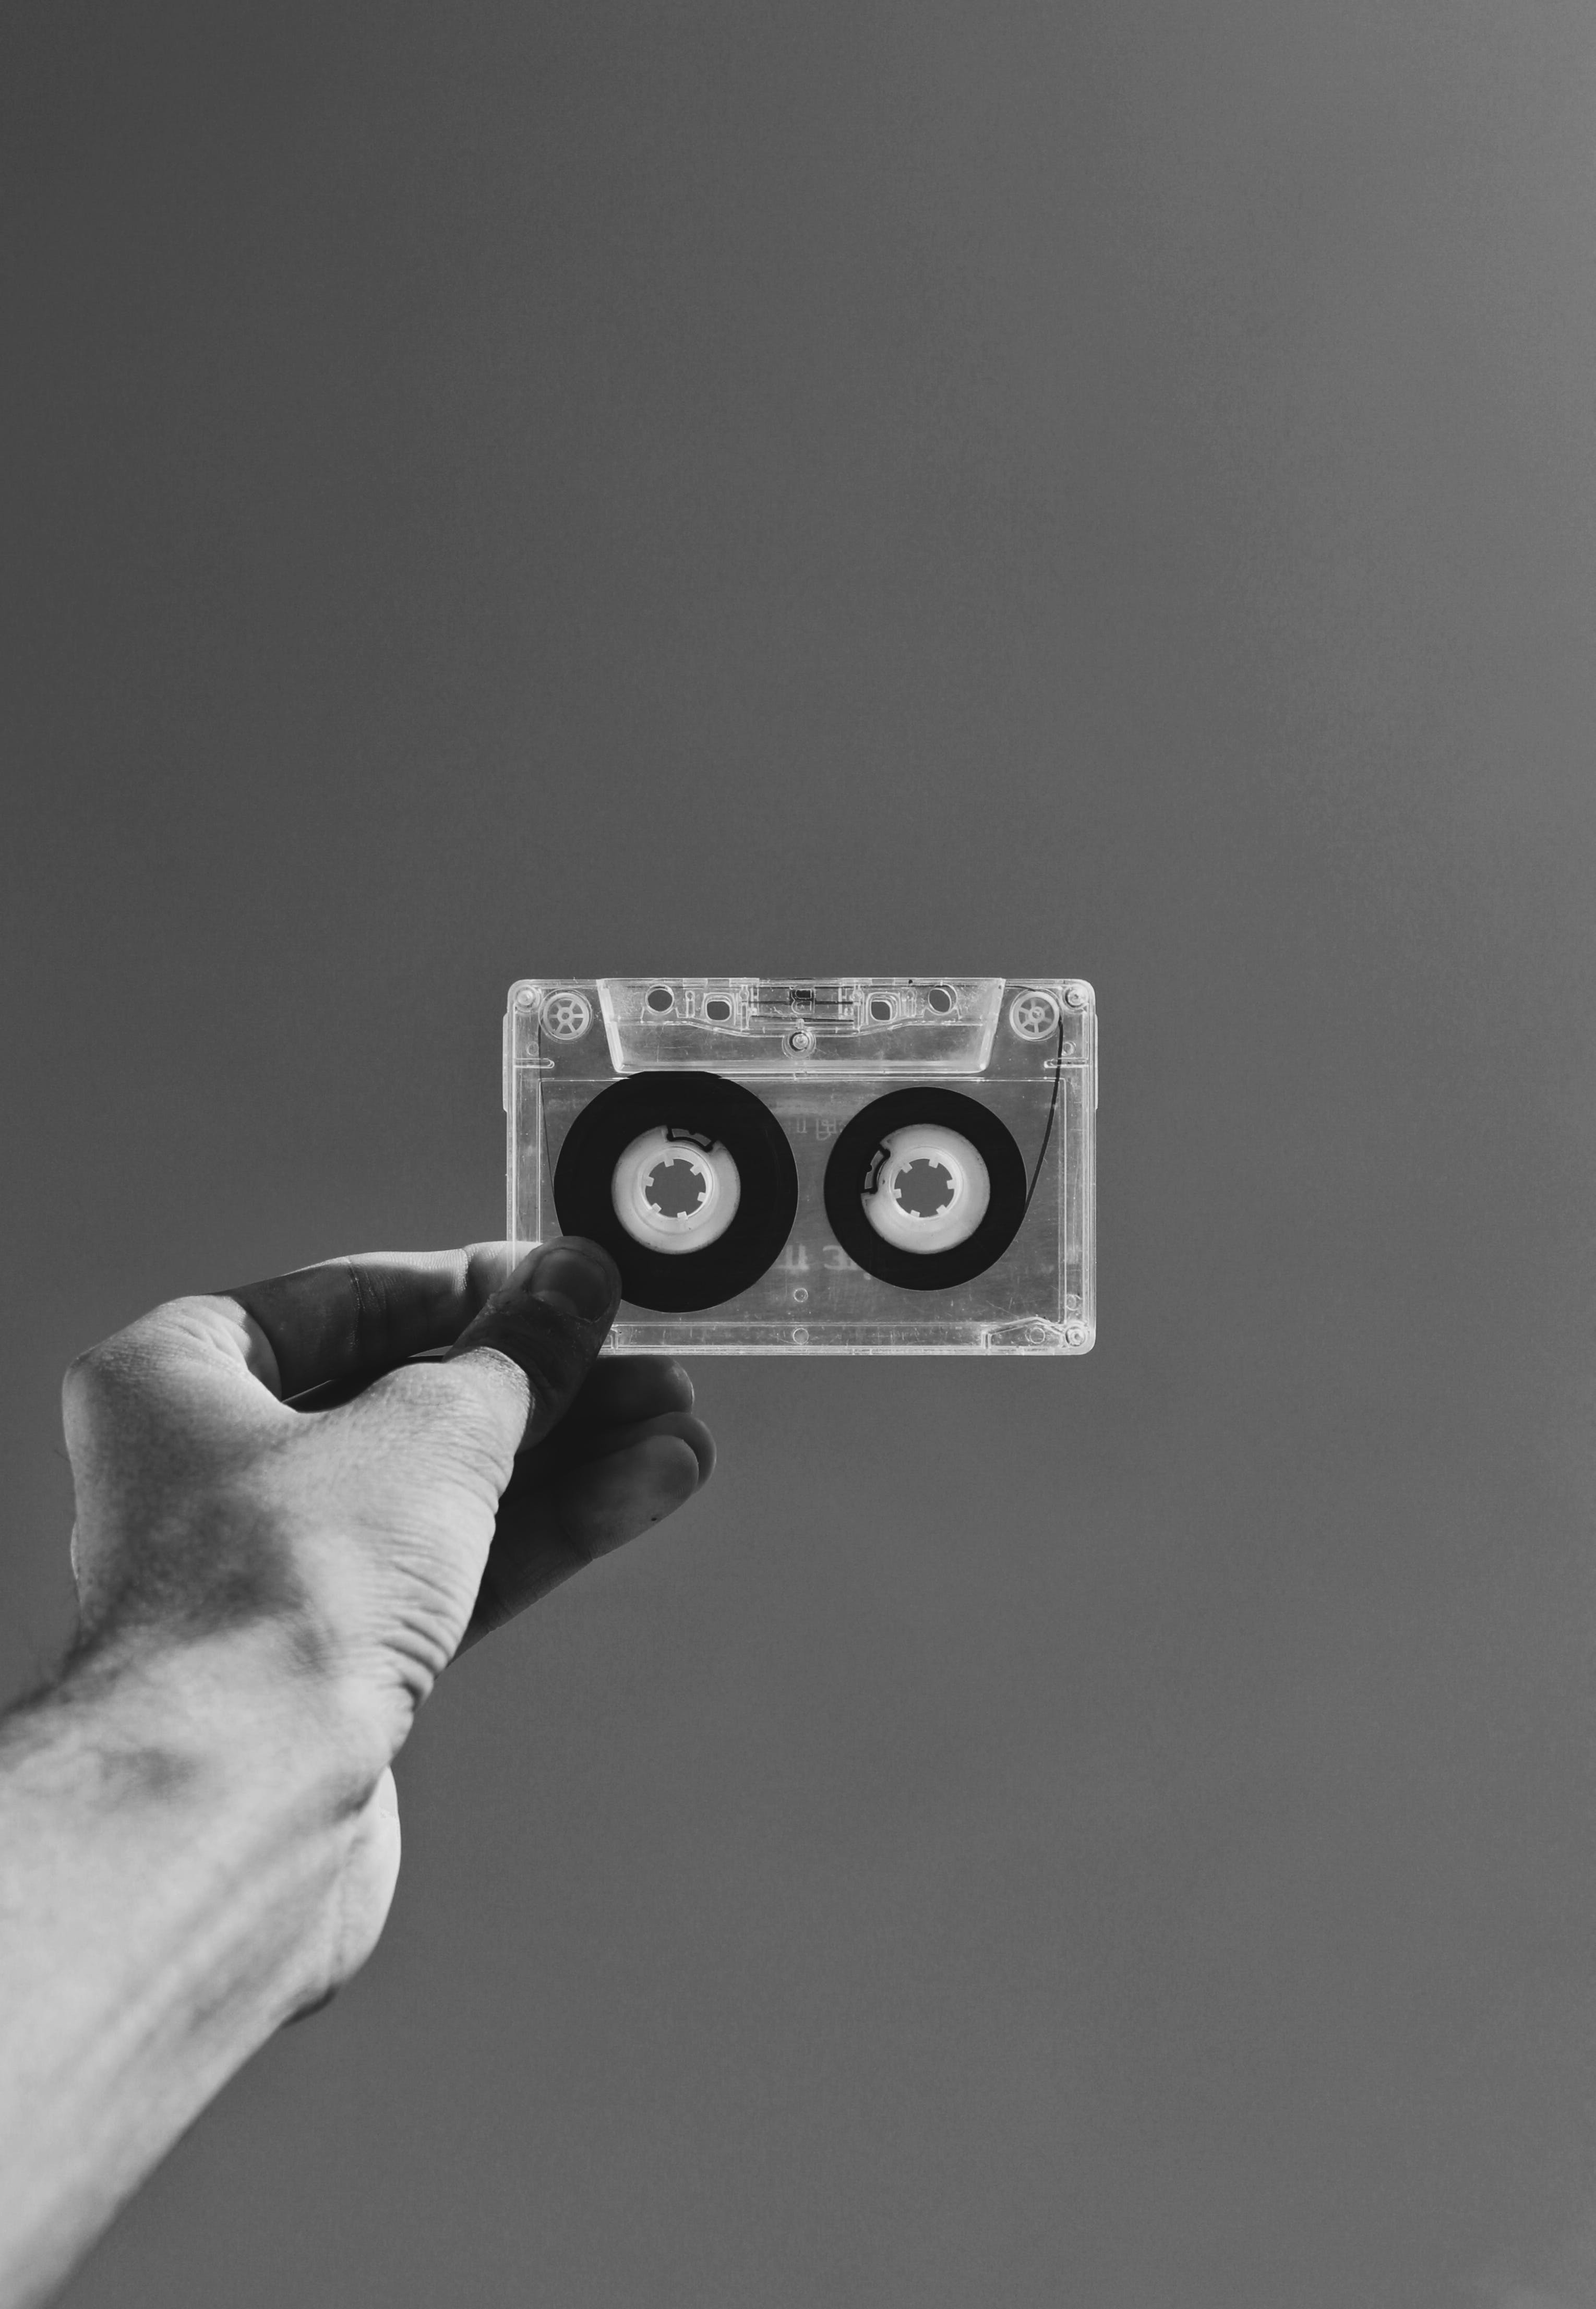 Grayscale Photography of Person Holding Cassette Tape